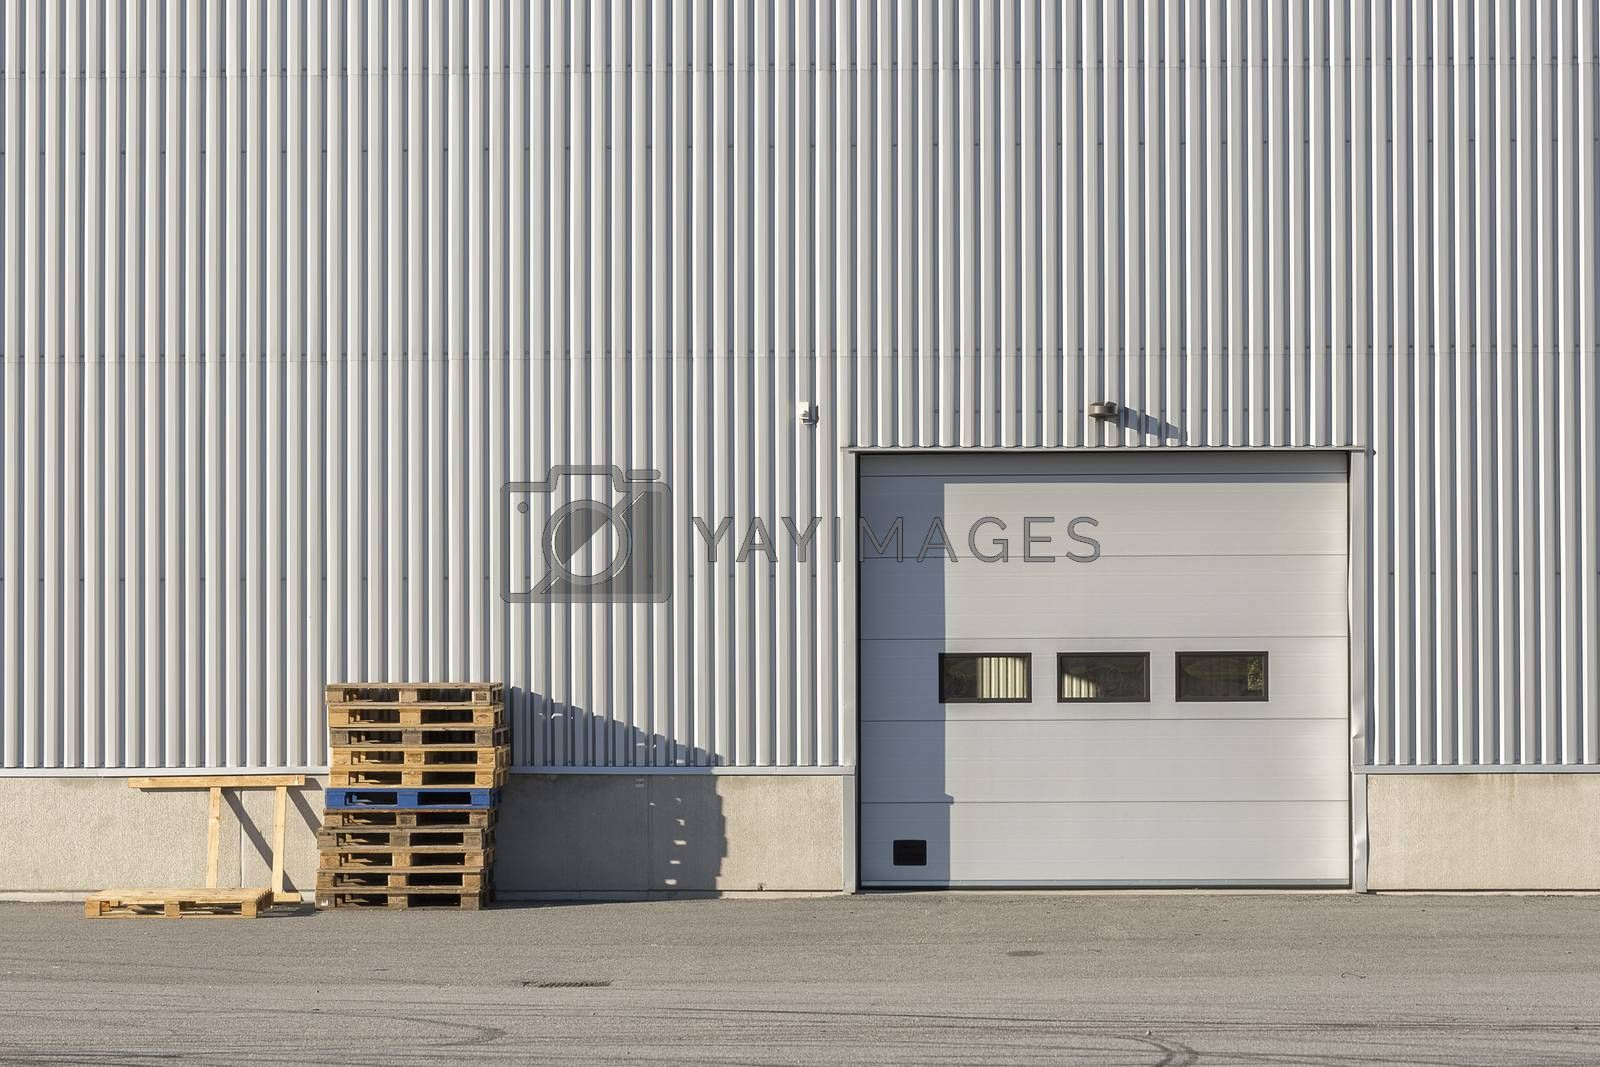 Industrial Building with Garage Door and Box Pallets.